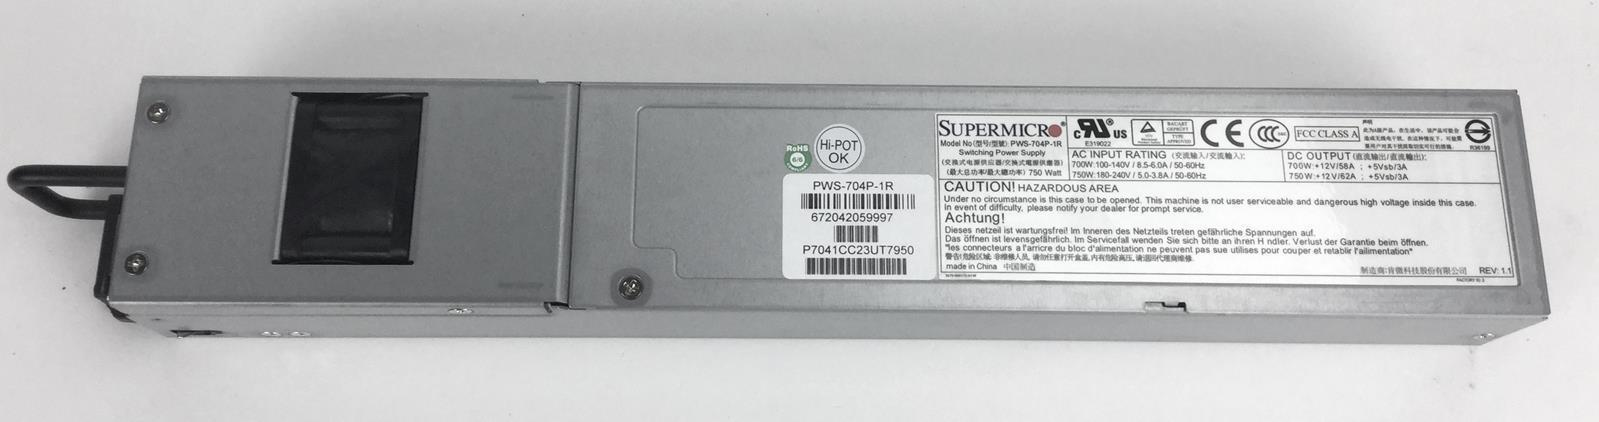 Supermicro 700W 1U Redundant PWS Module, w/ PMBus Server Power Supply - PWS-704P-1R.